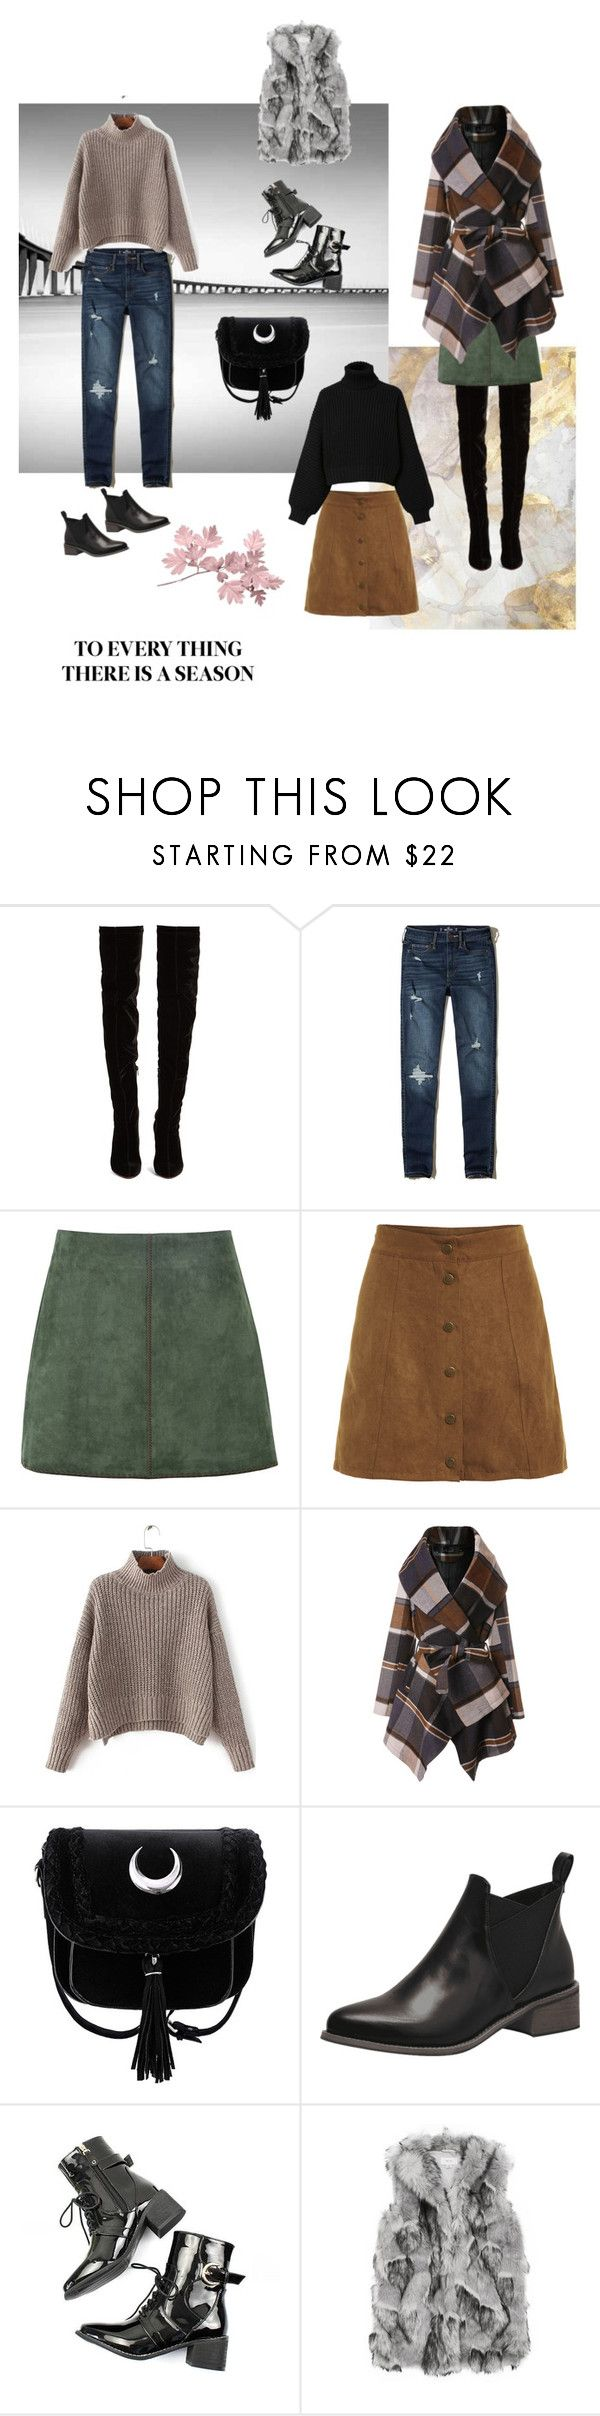 """""""Outfits for a season"""" by happiestime ❤ liked on Polyvore featuring Christian Louboutin, Hollister Co., George J. Love, Chicwish and Diesel"""